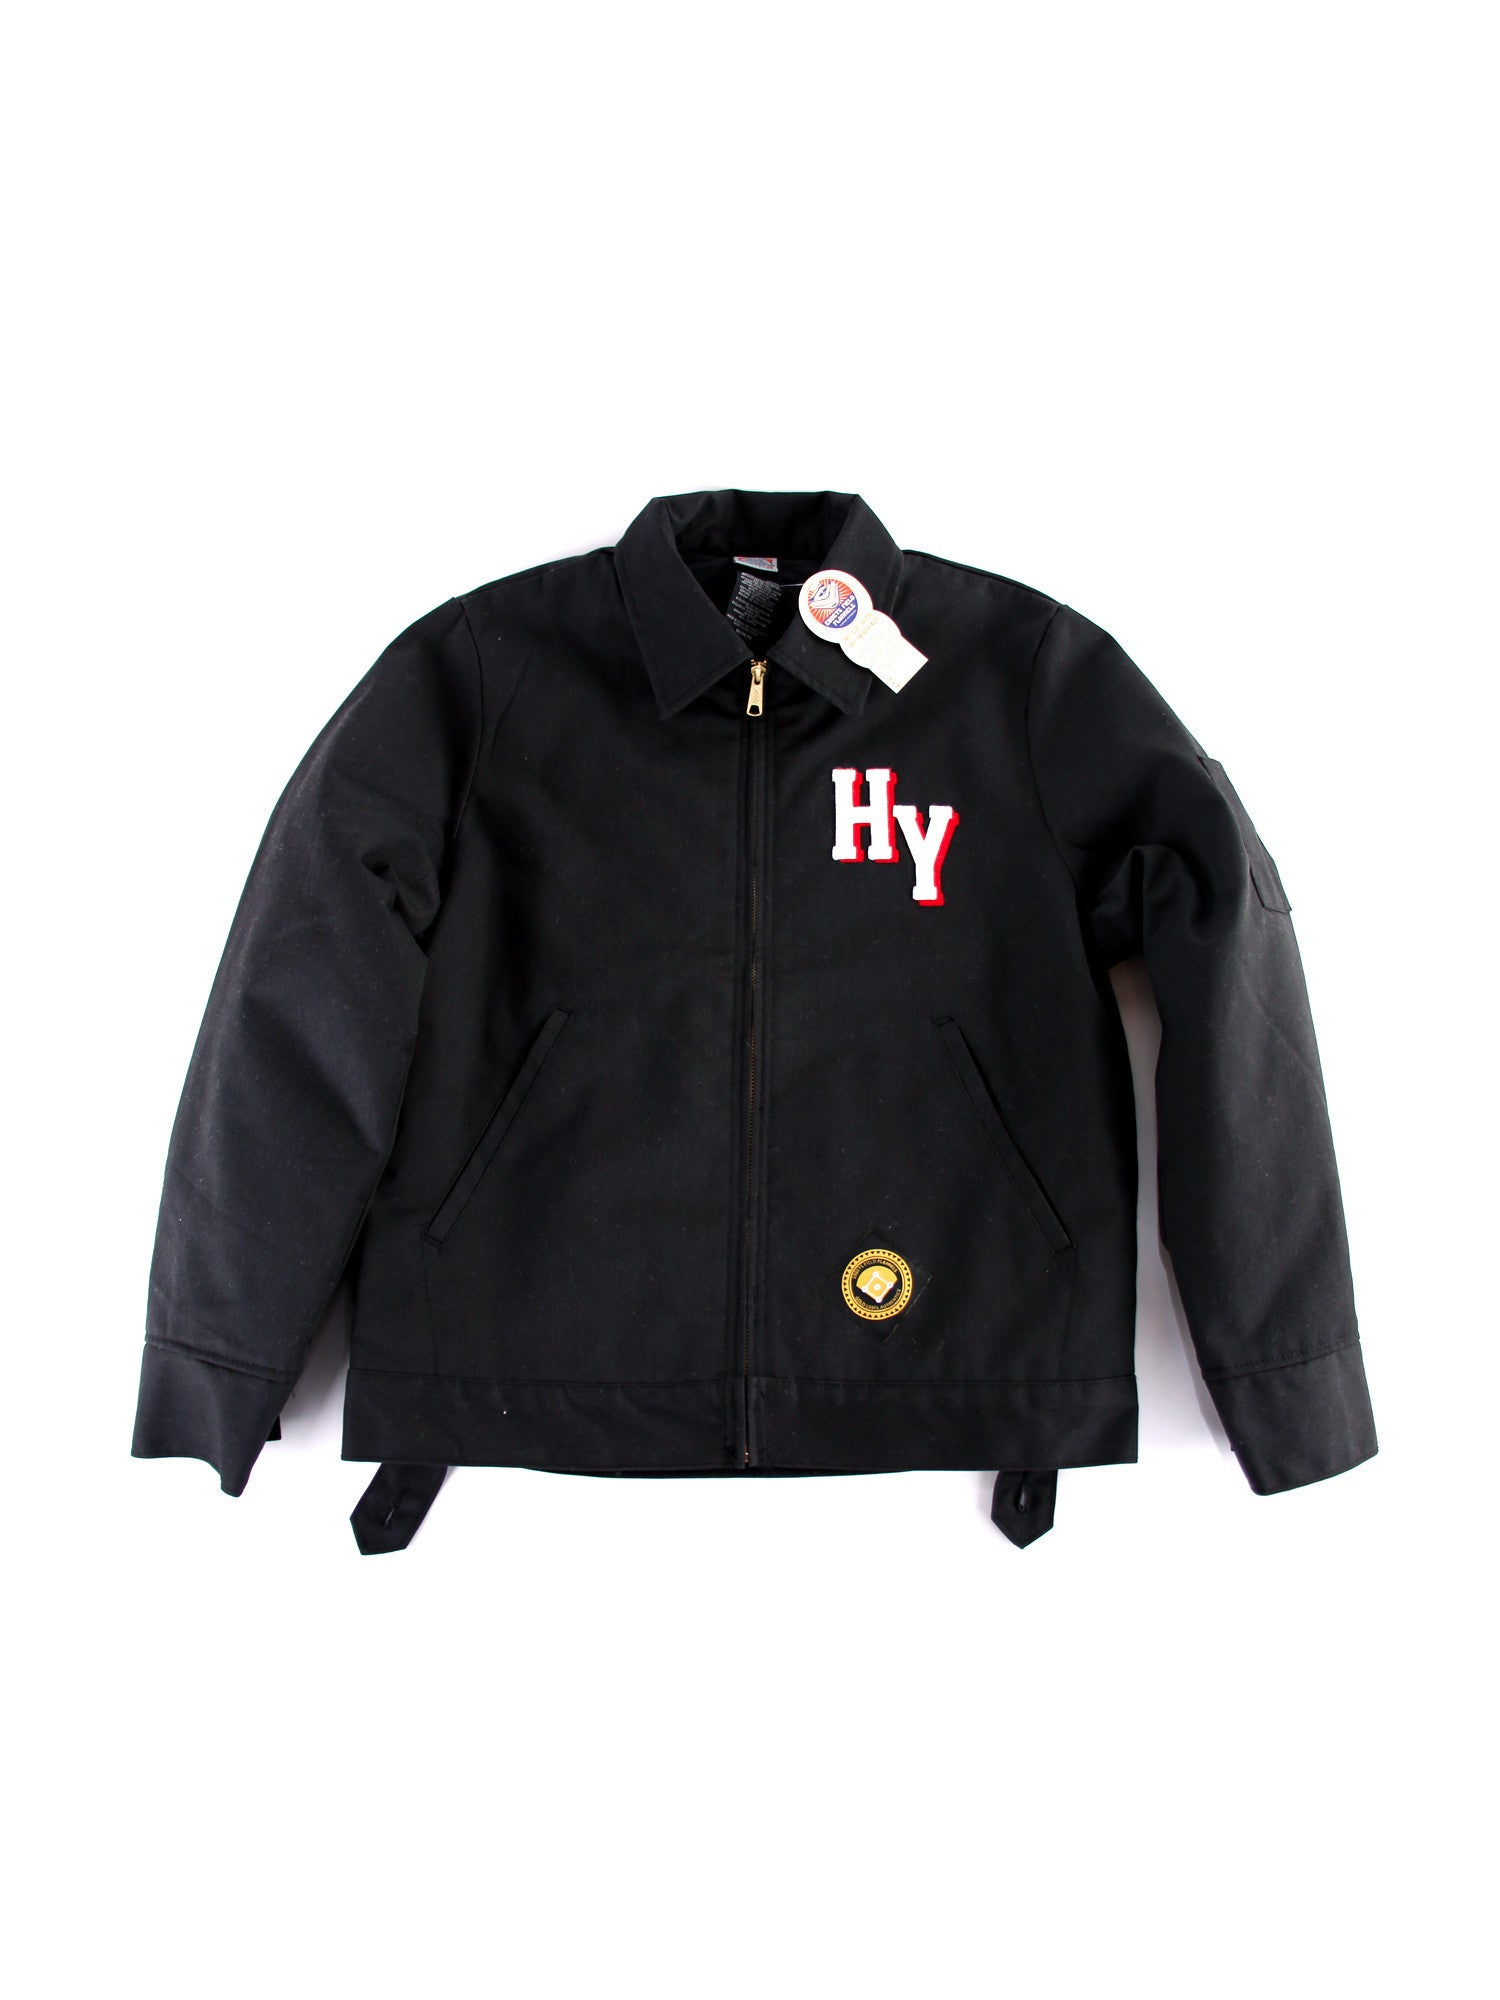 HSTRY x Ebbets Grounds Jacket